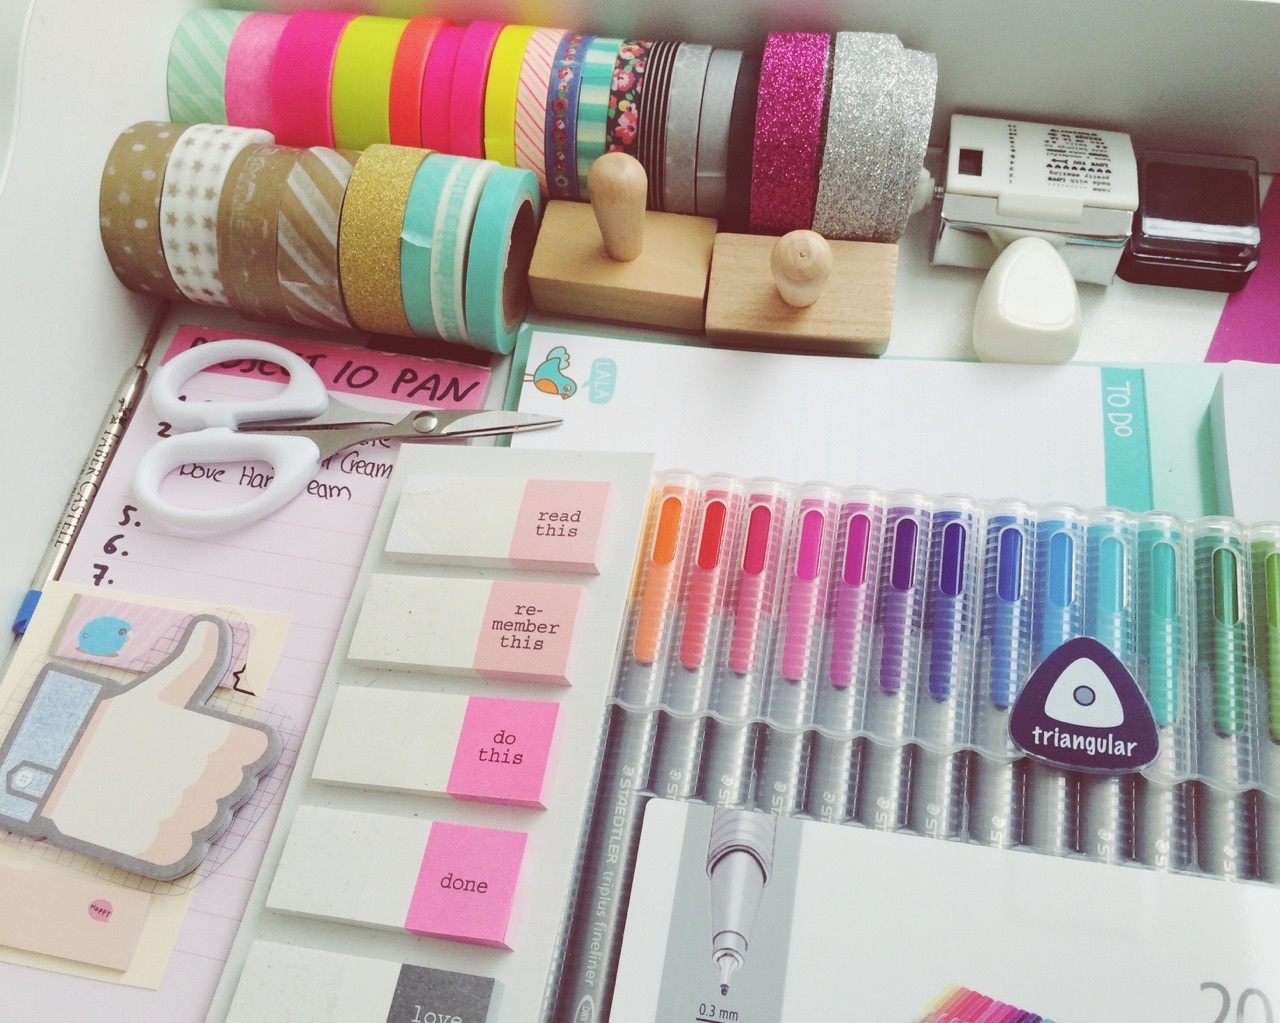 colourful, essentials, goals, life, love, notes, pens, ribbon, school, stamps, sticky notes, study, tumblr, studyblr, washi tapes